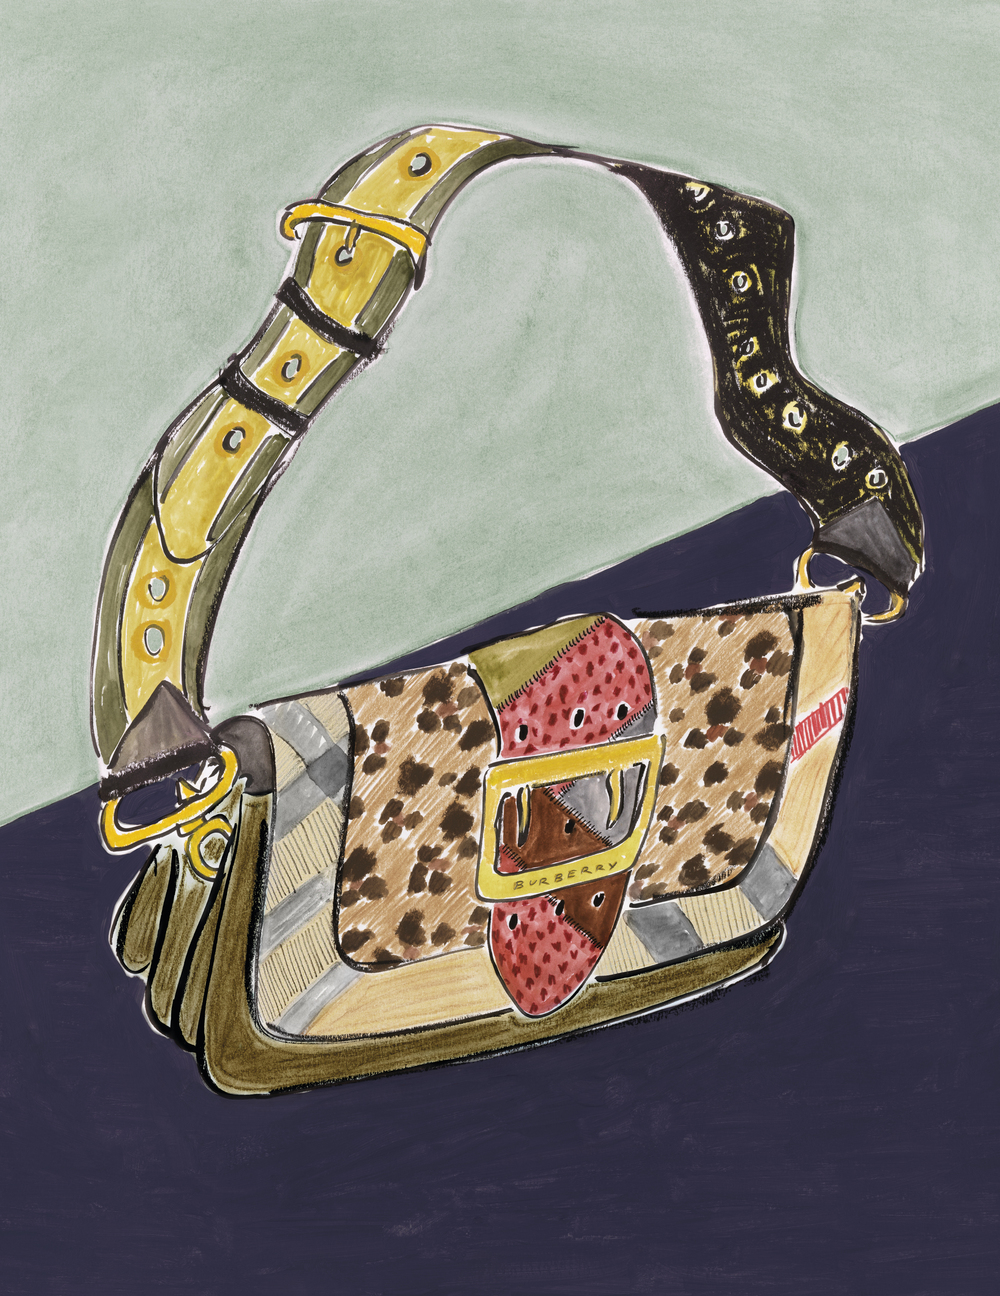 Illustration of The Patchwork by Luke Edward Hall for Burberry - on embargo until 31 May, 8AM UK time_002.jpg